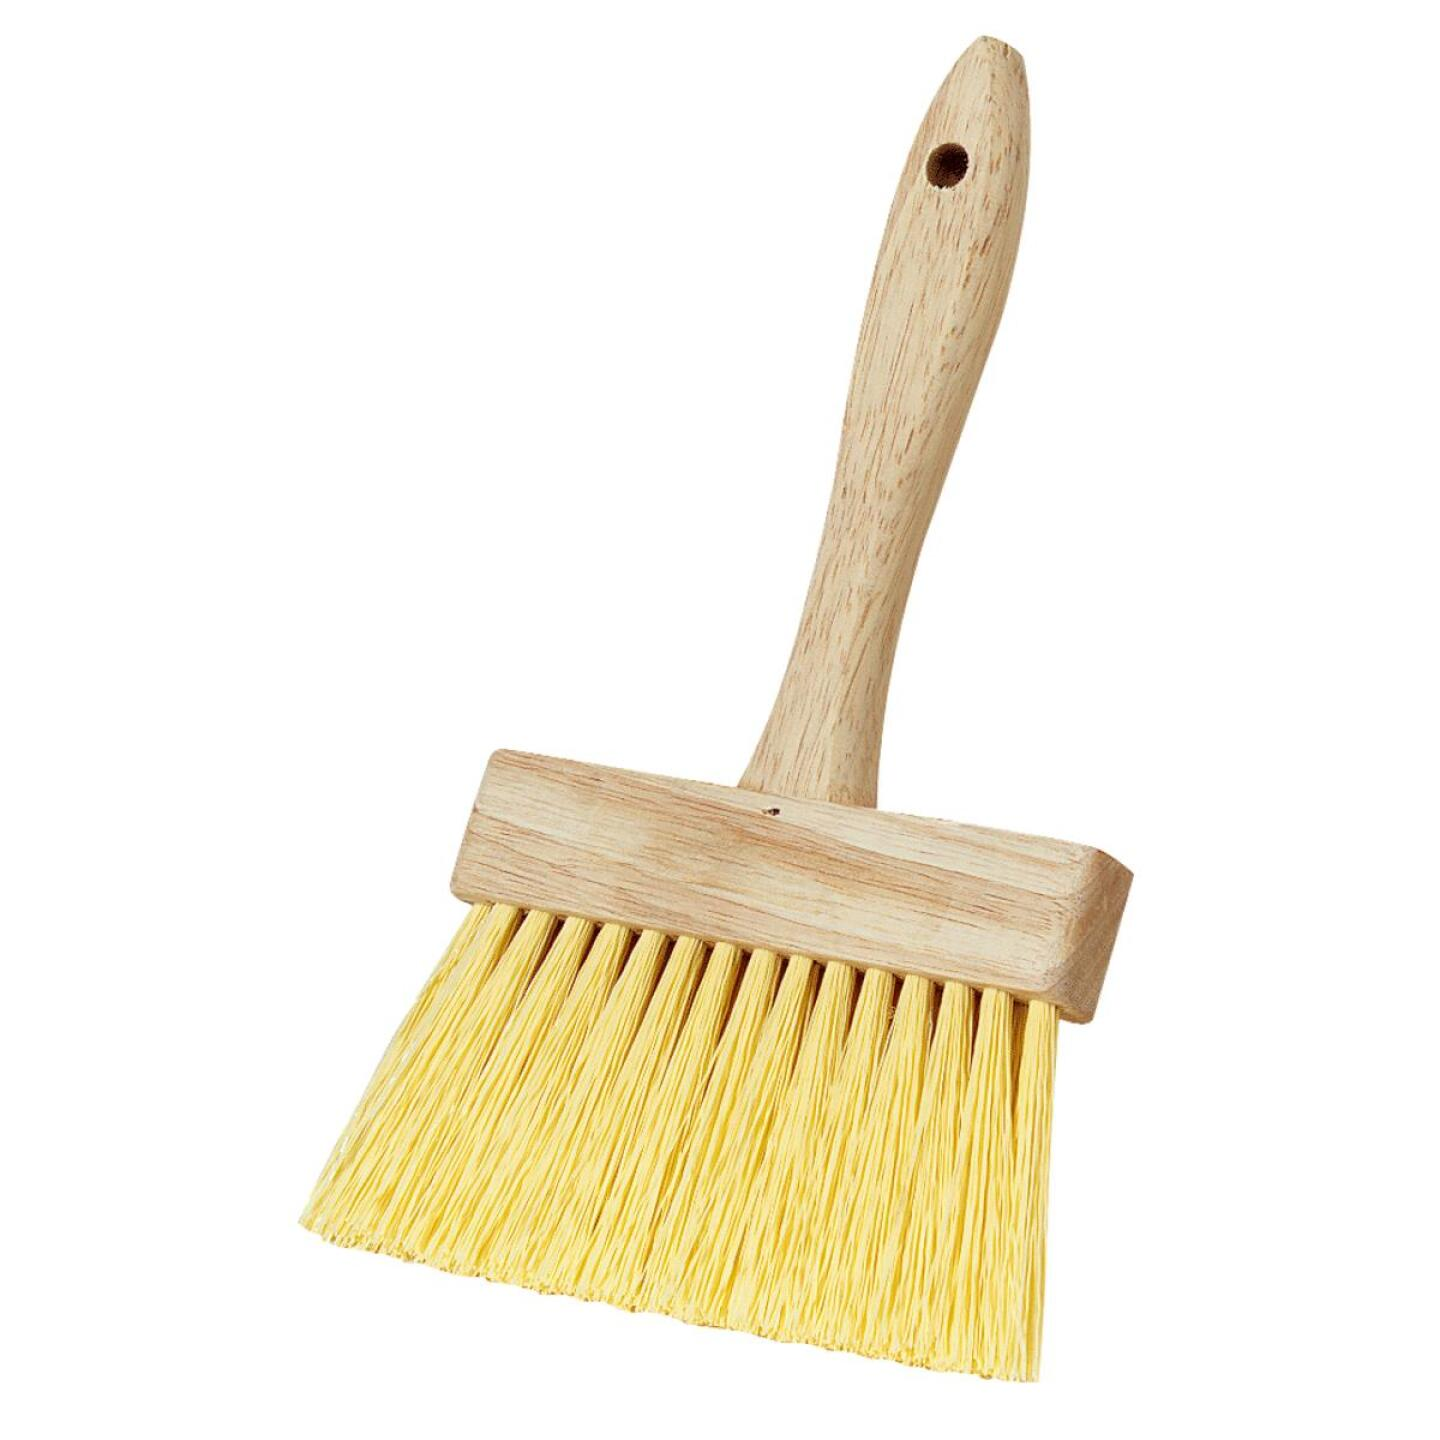 DQB 6 In. x 3 In. Colored Tampico Kalsomine Brush Image 1